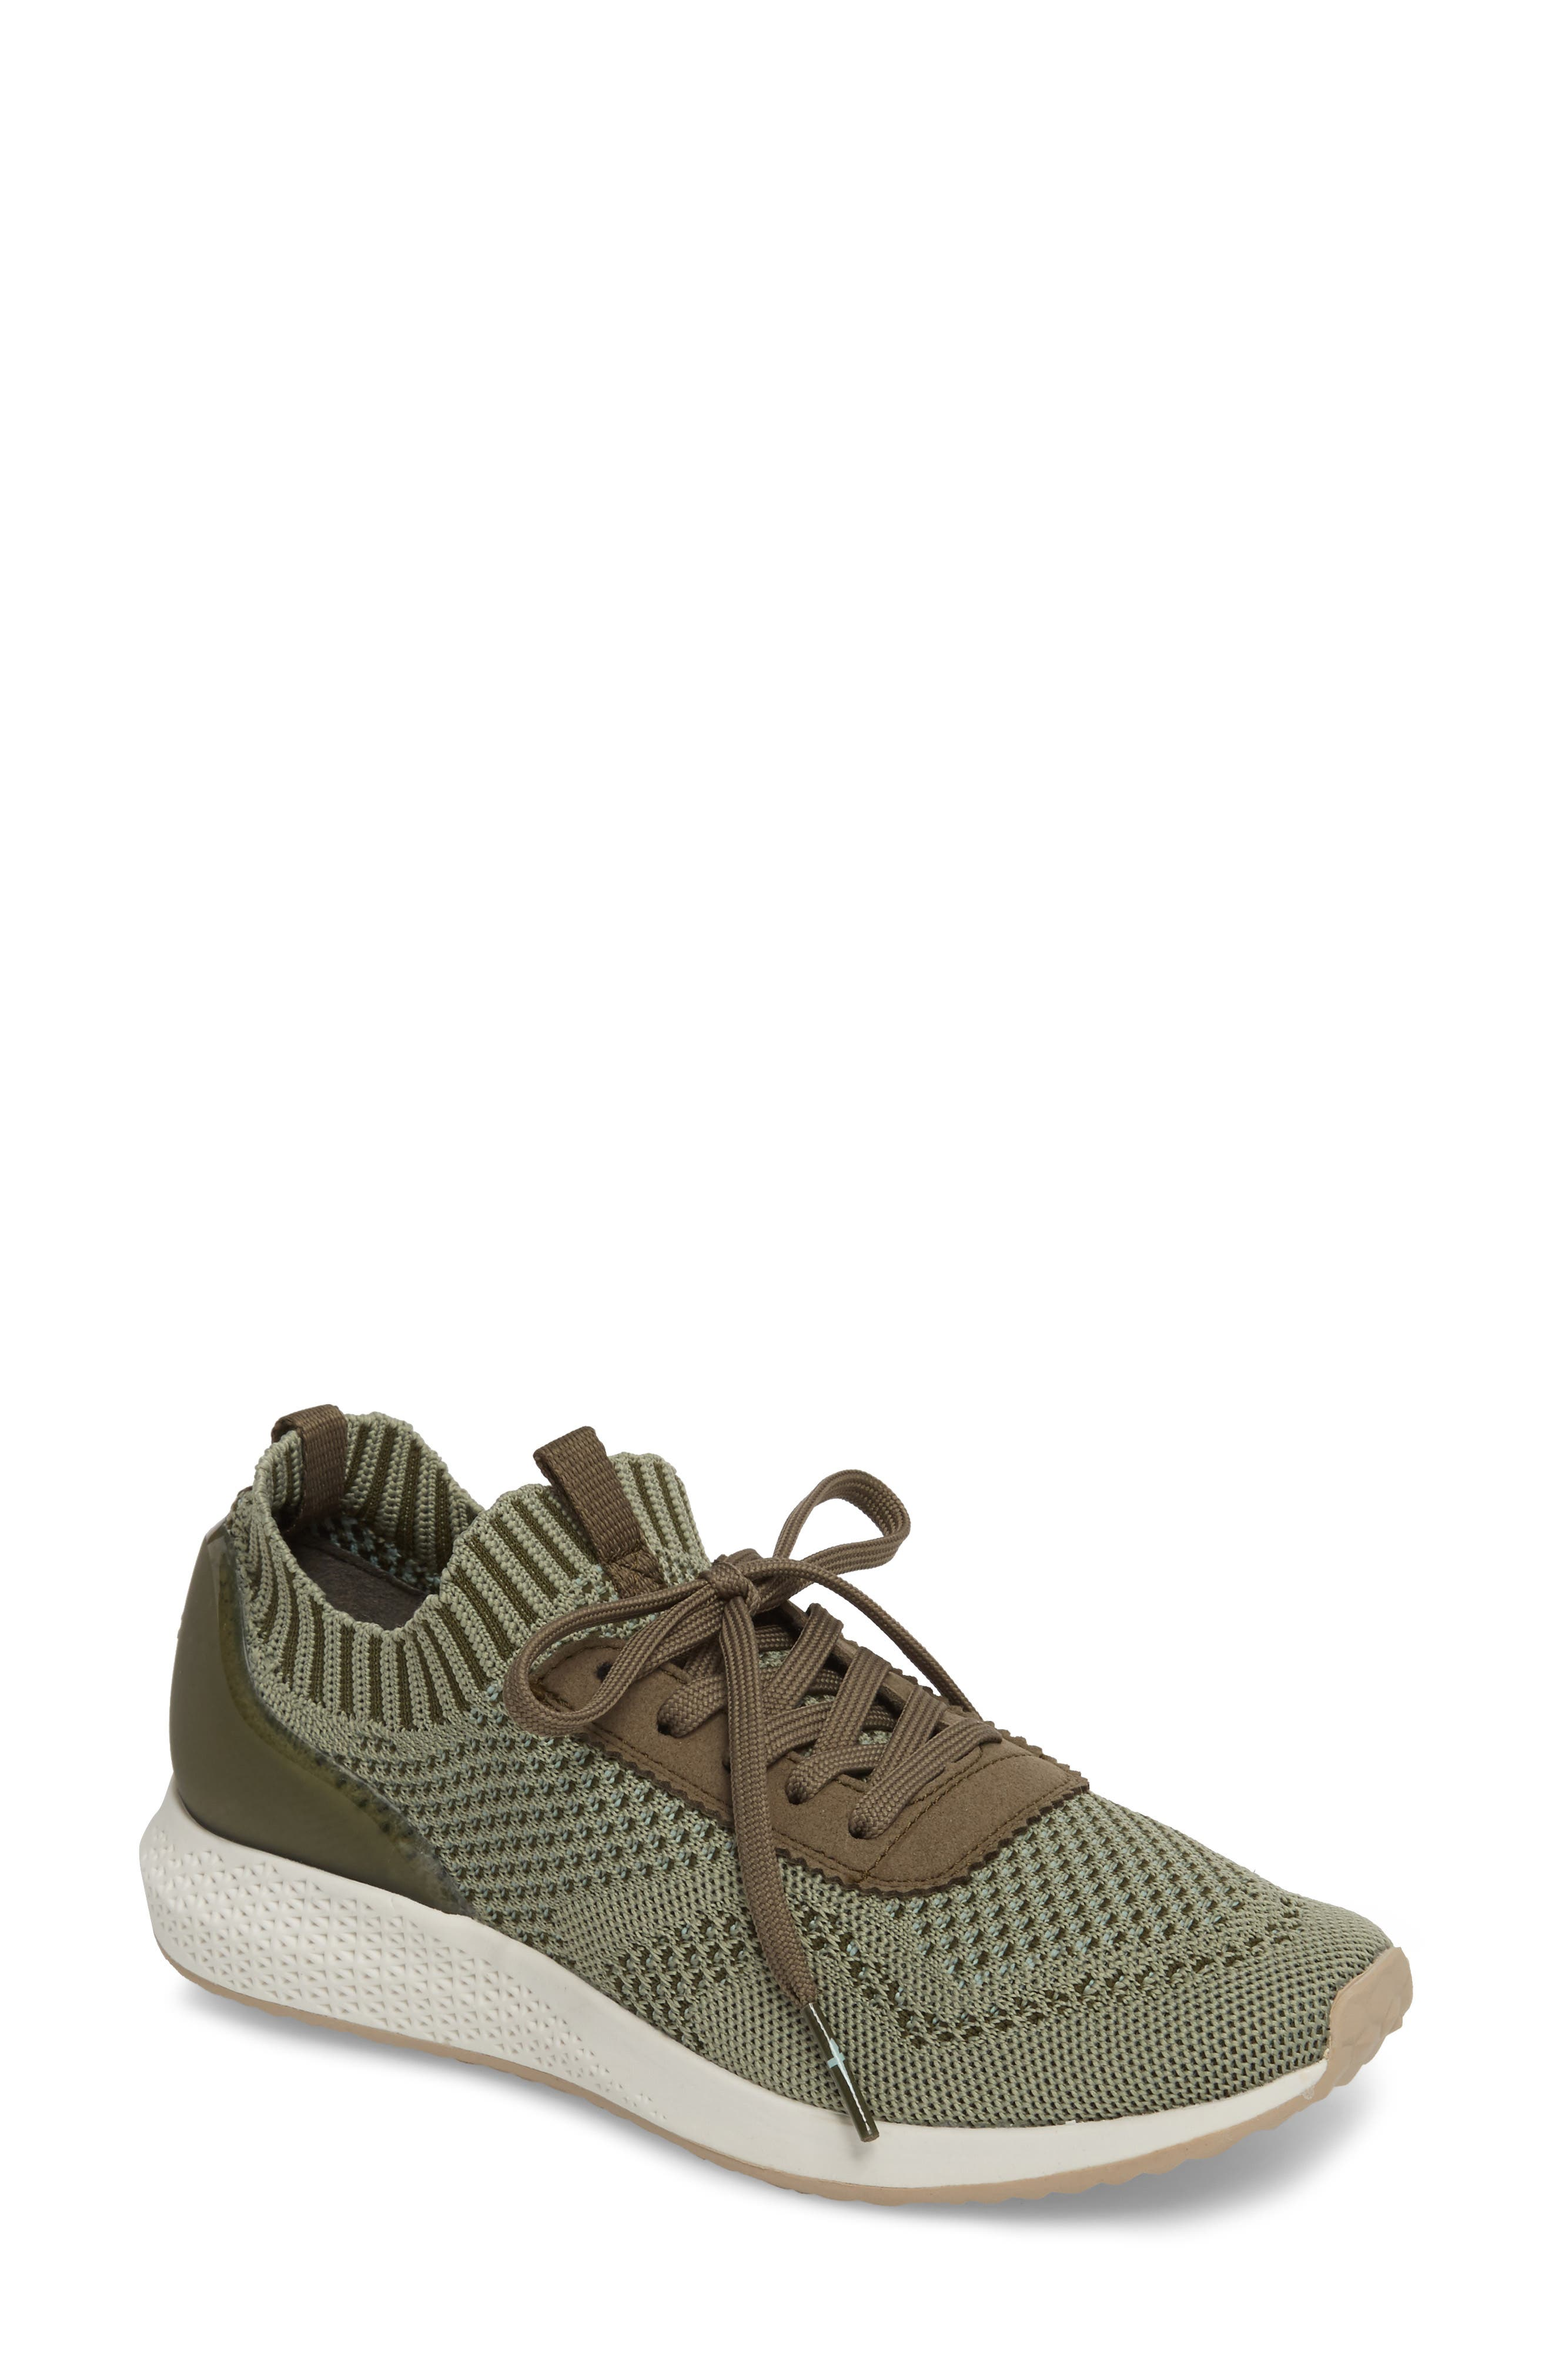 Tavia Sneaker,                         Main,                         color, Olive Leather